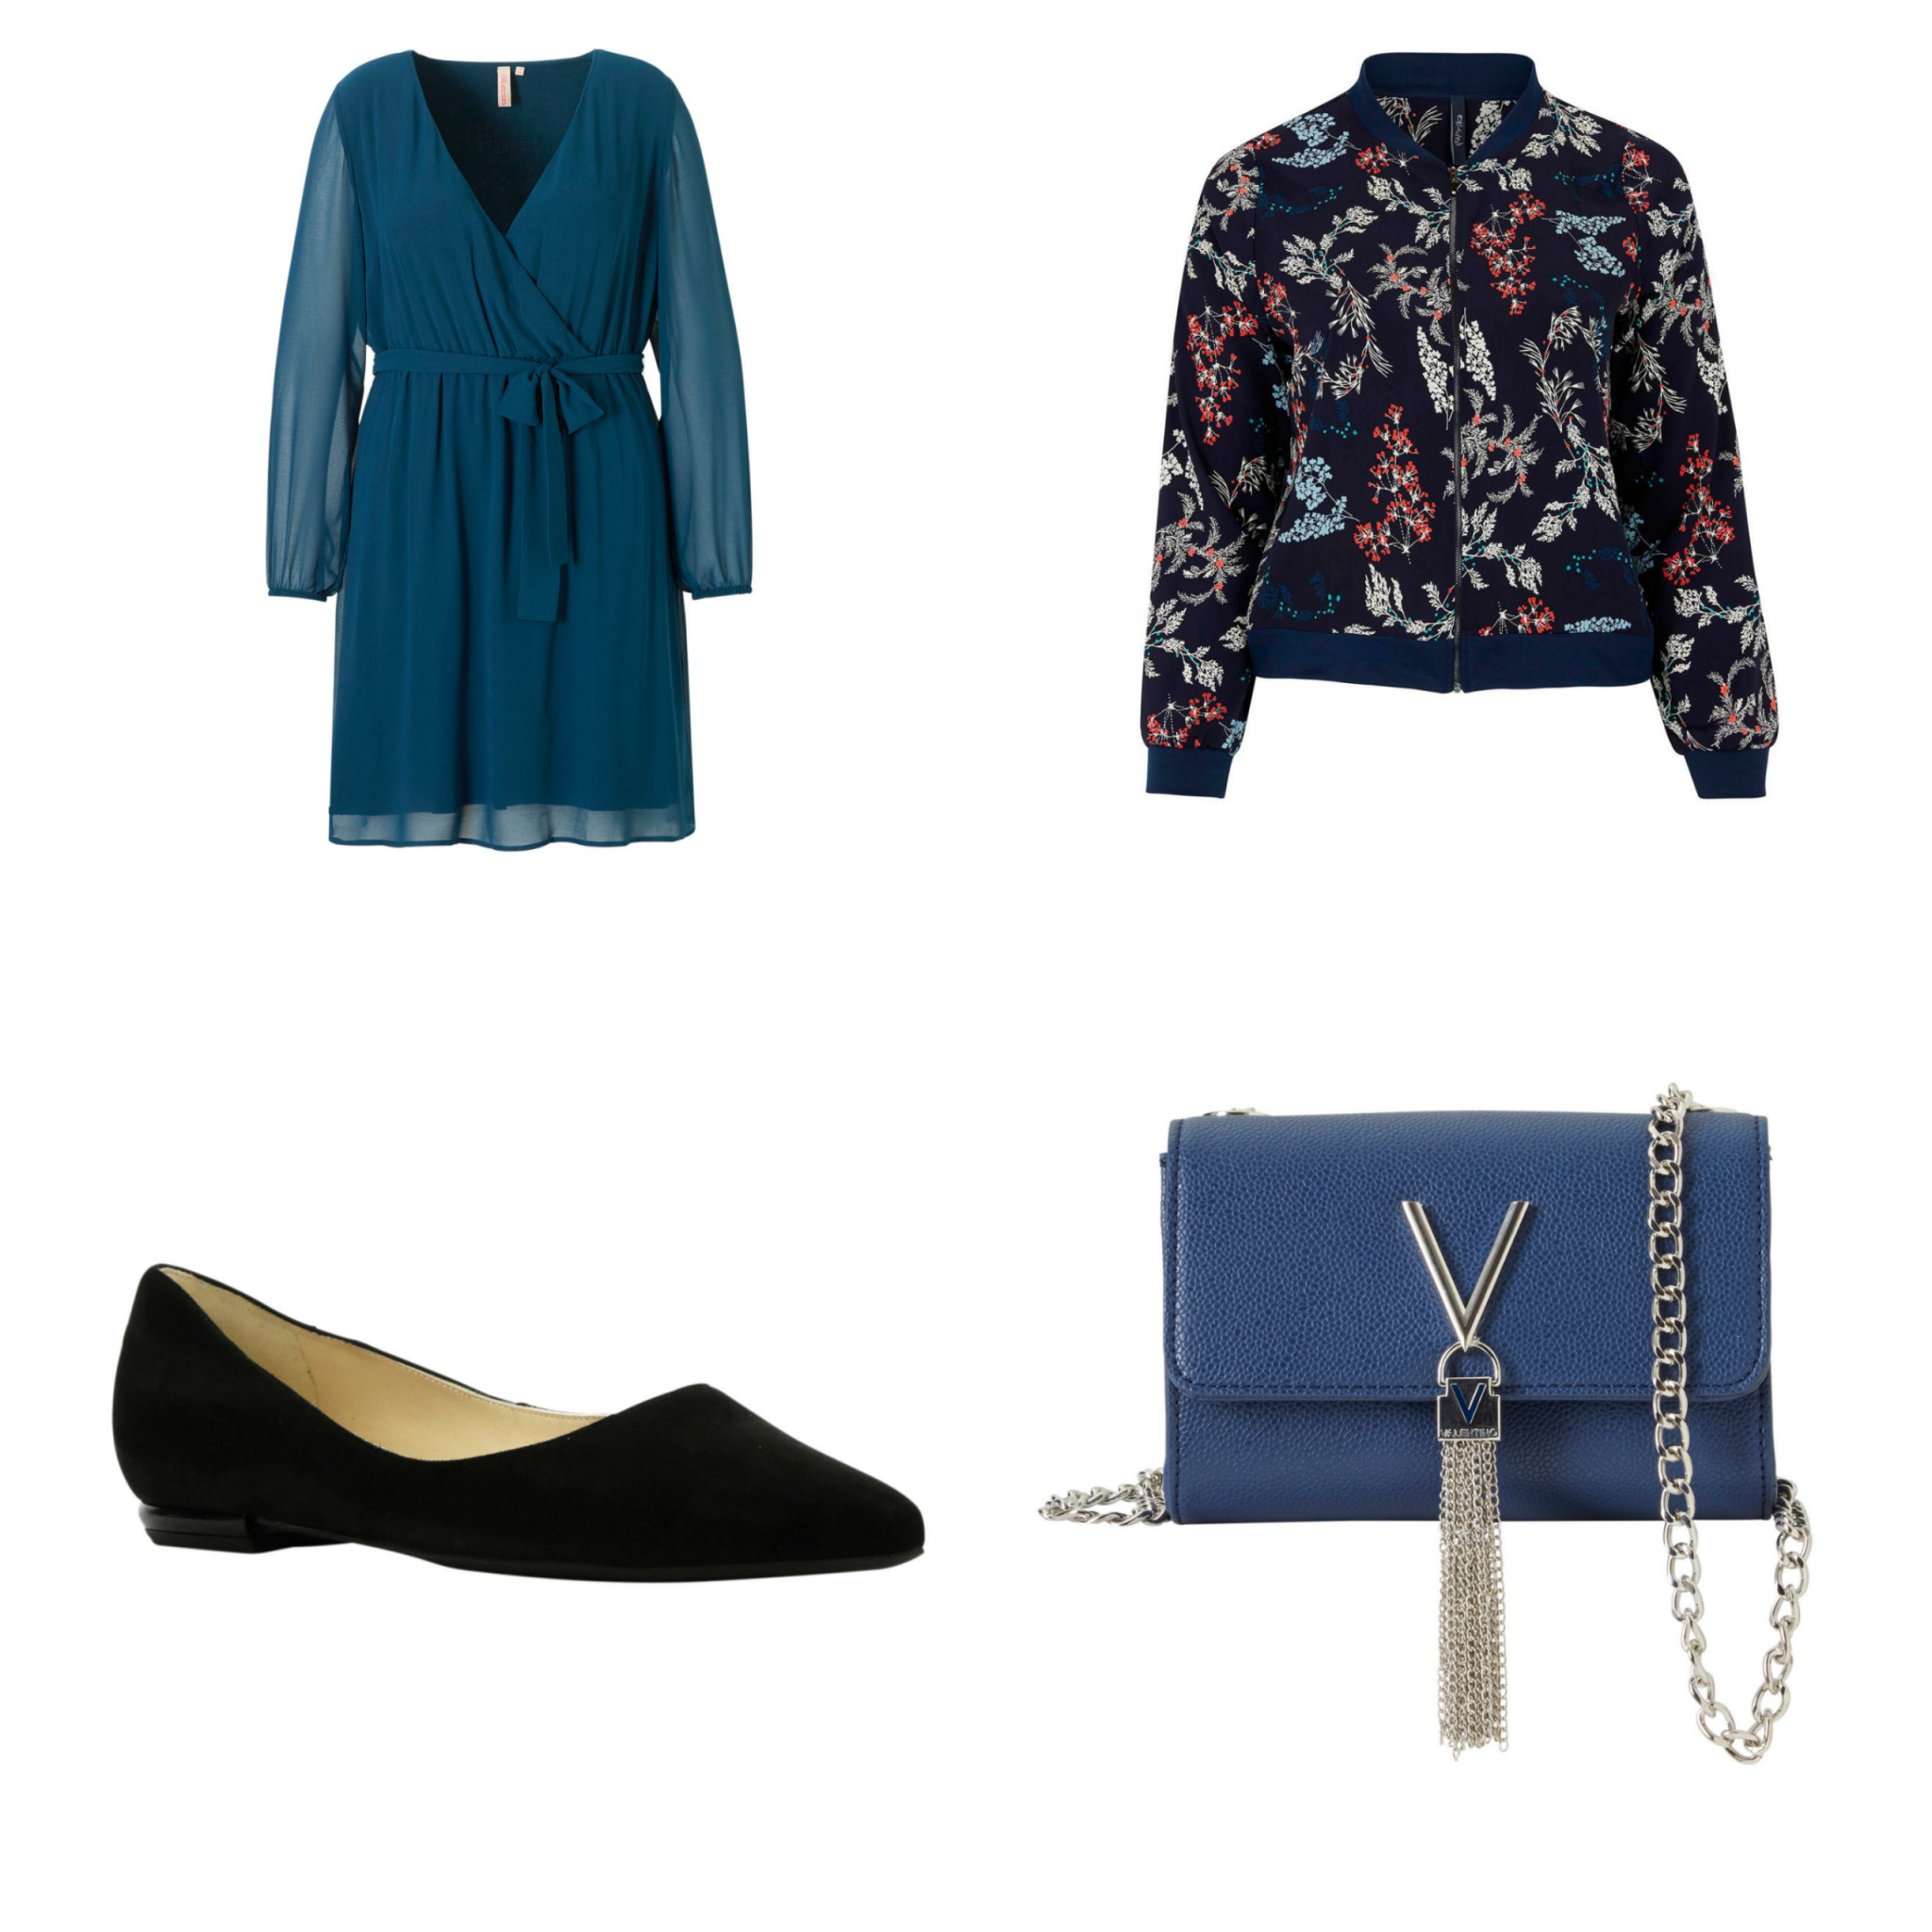 Plus Size Fashion Friday: Colour in your closet